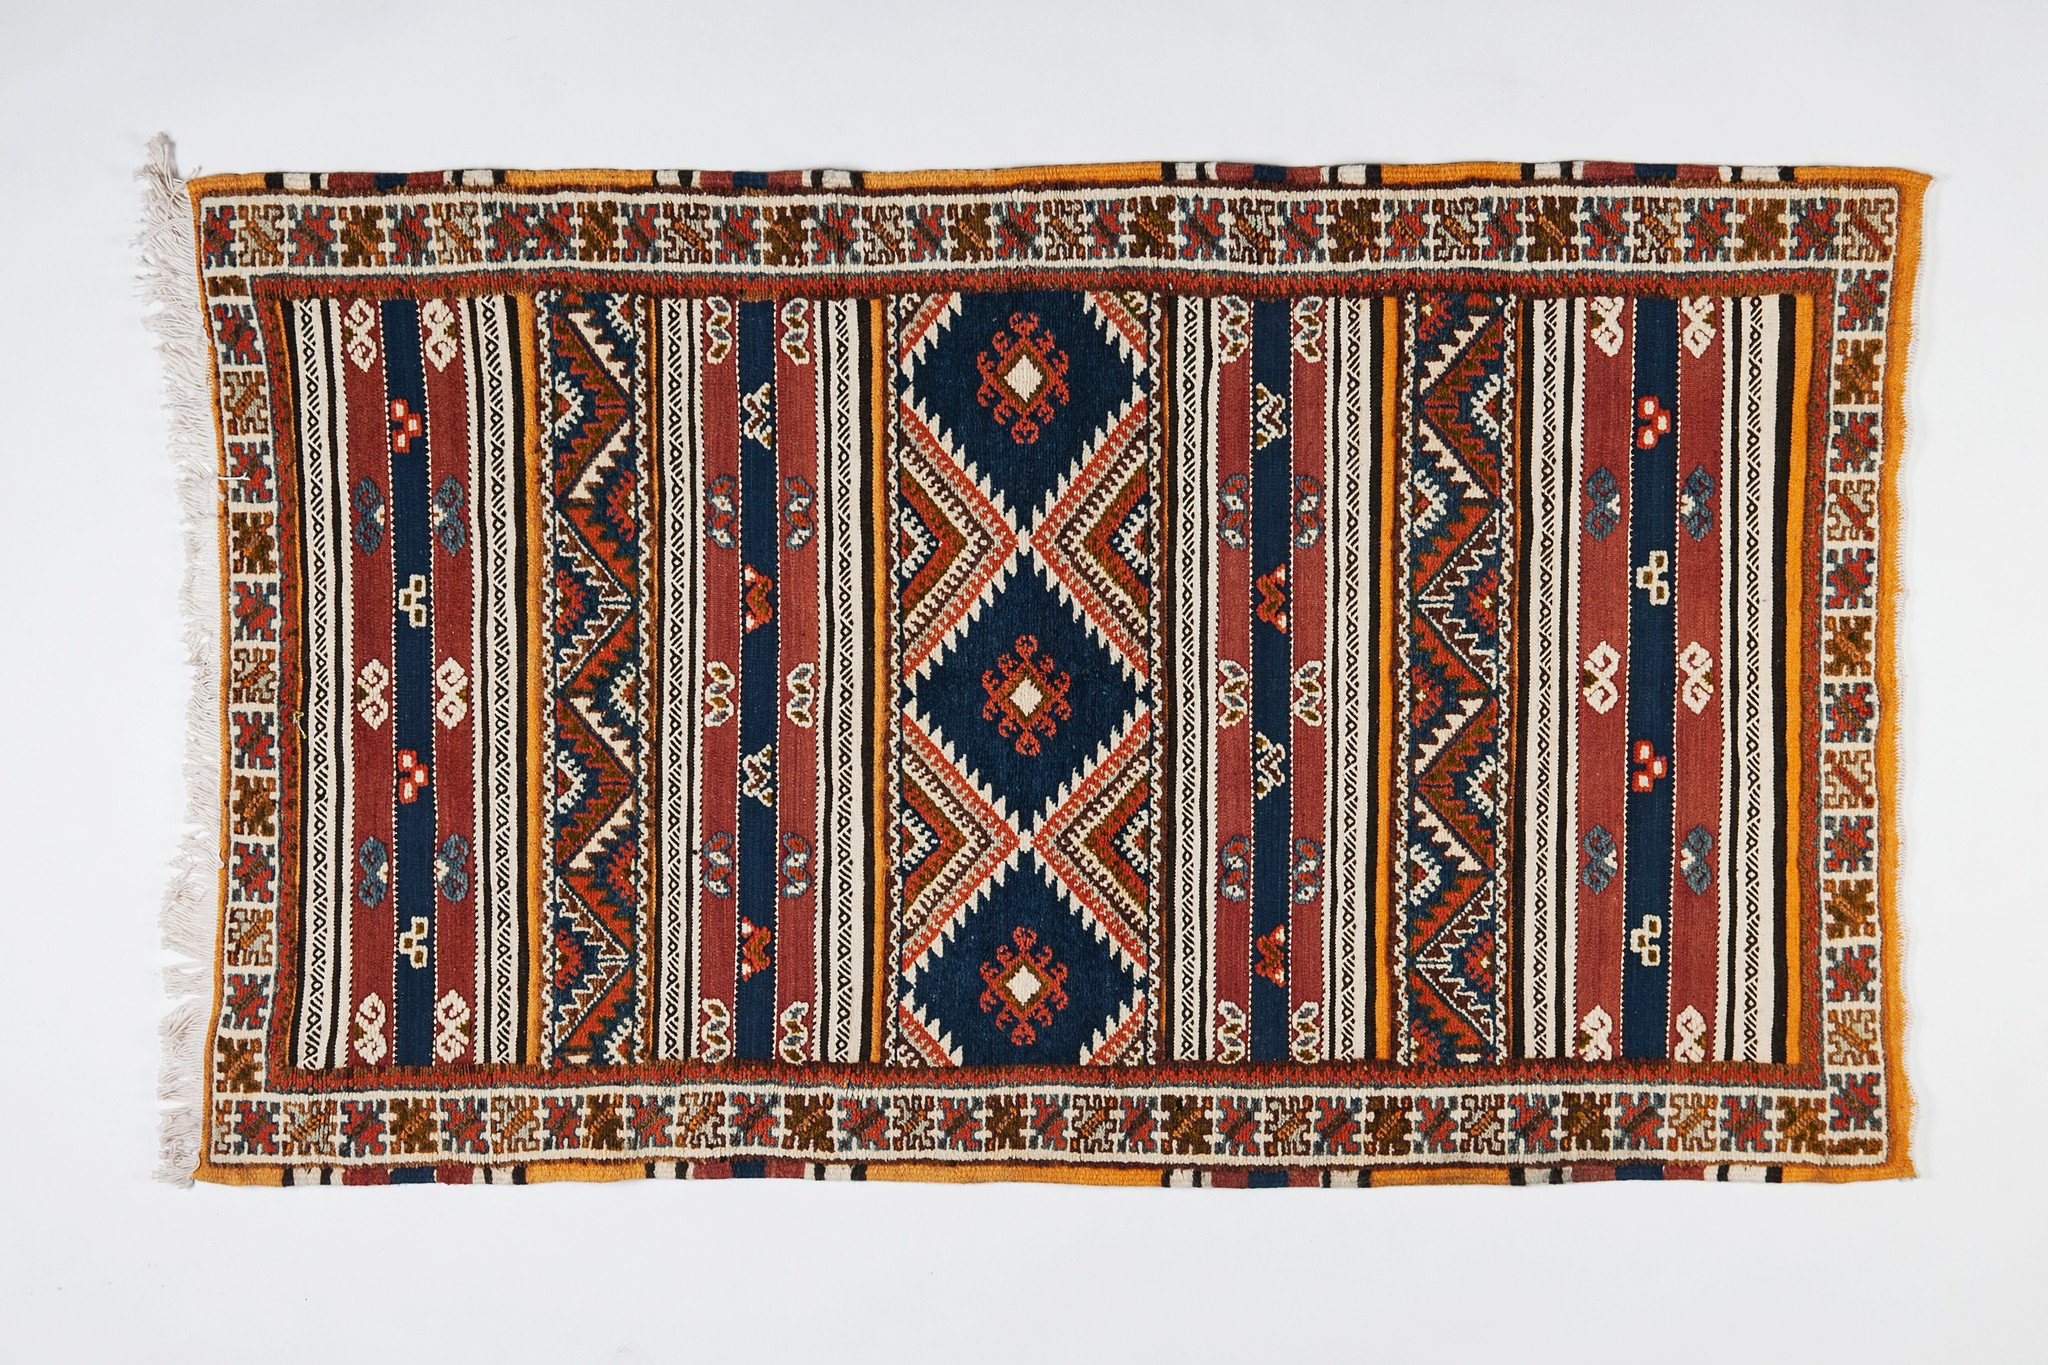 Berber Rug - Handwoven Organic Dye Wool with Abstract Designs